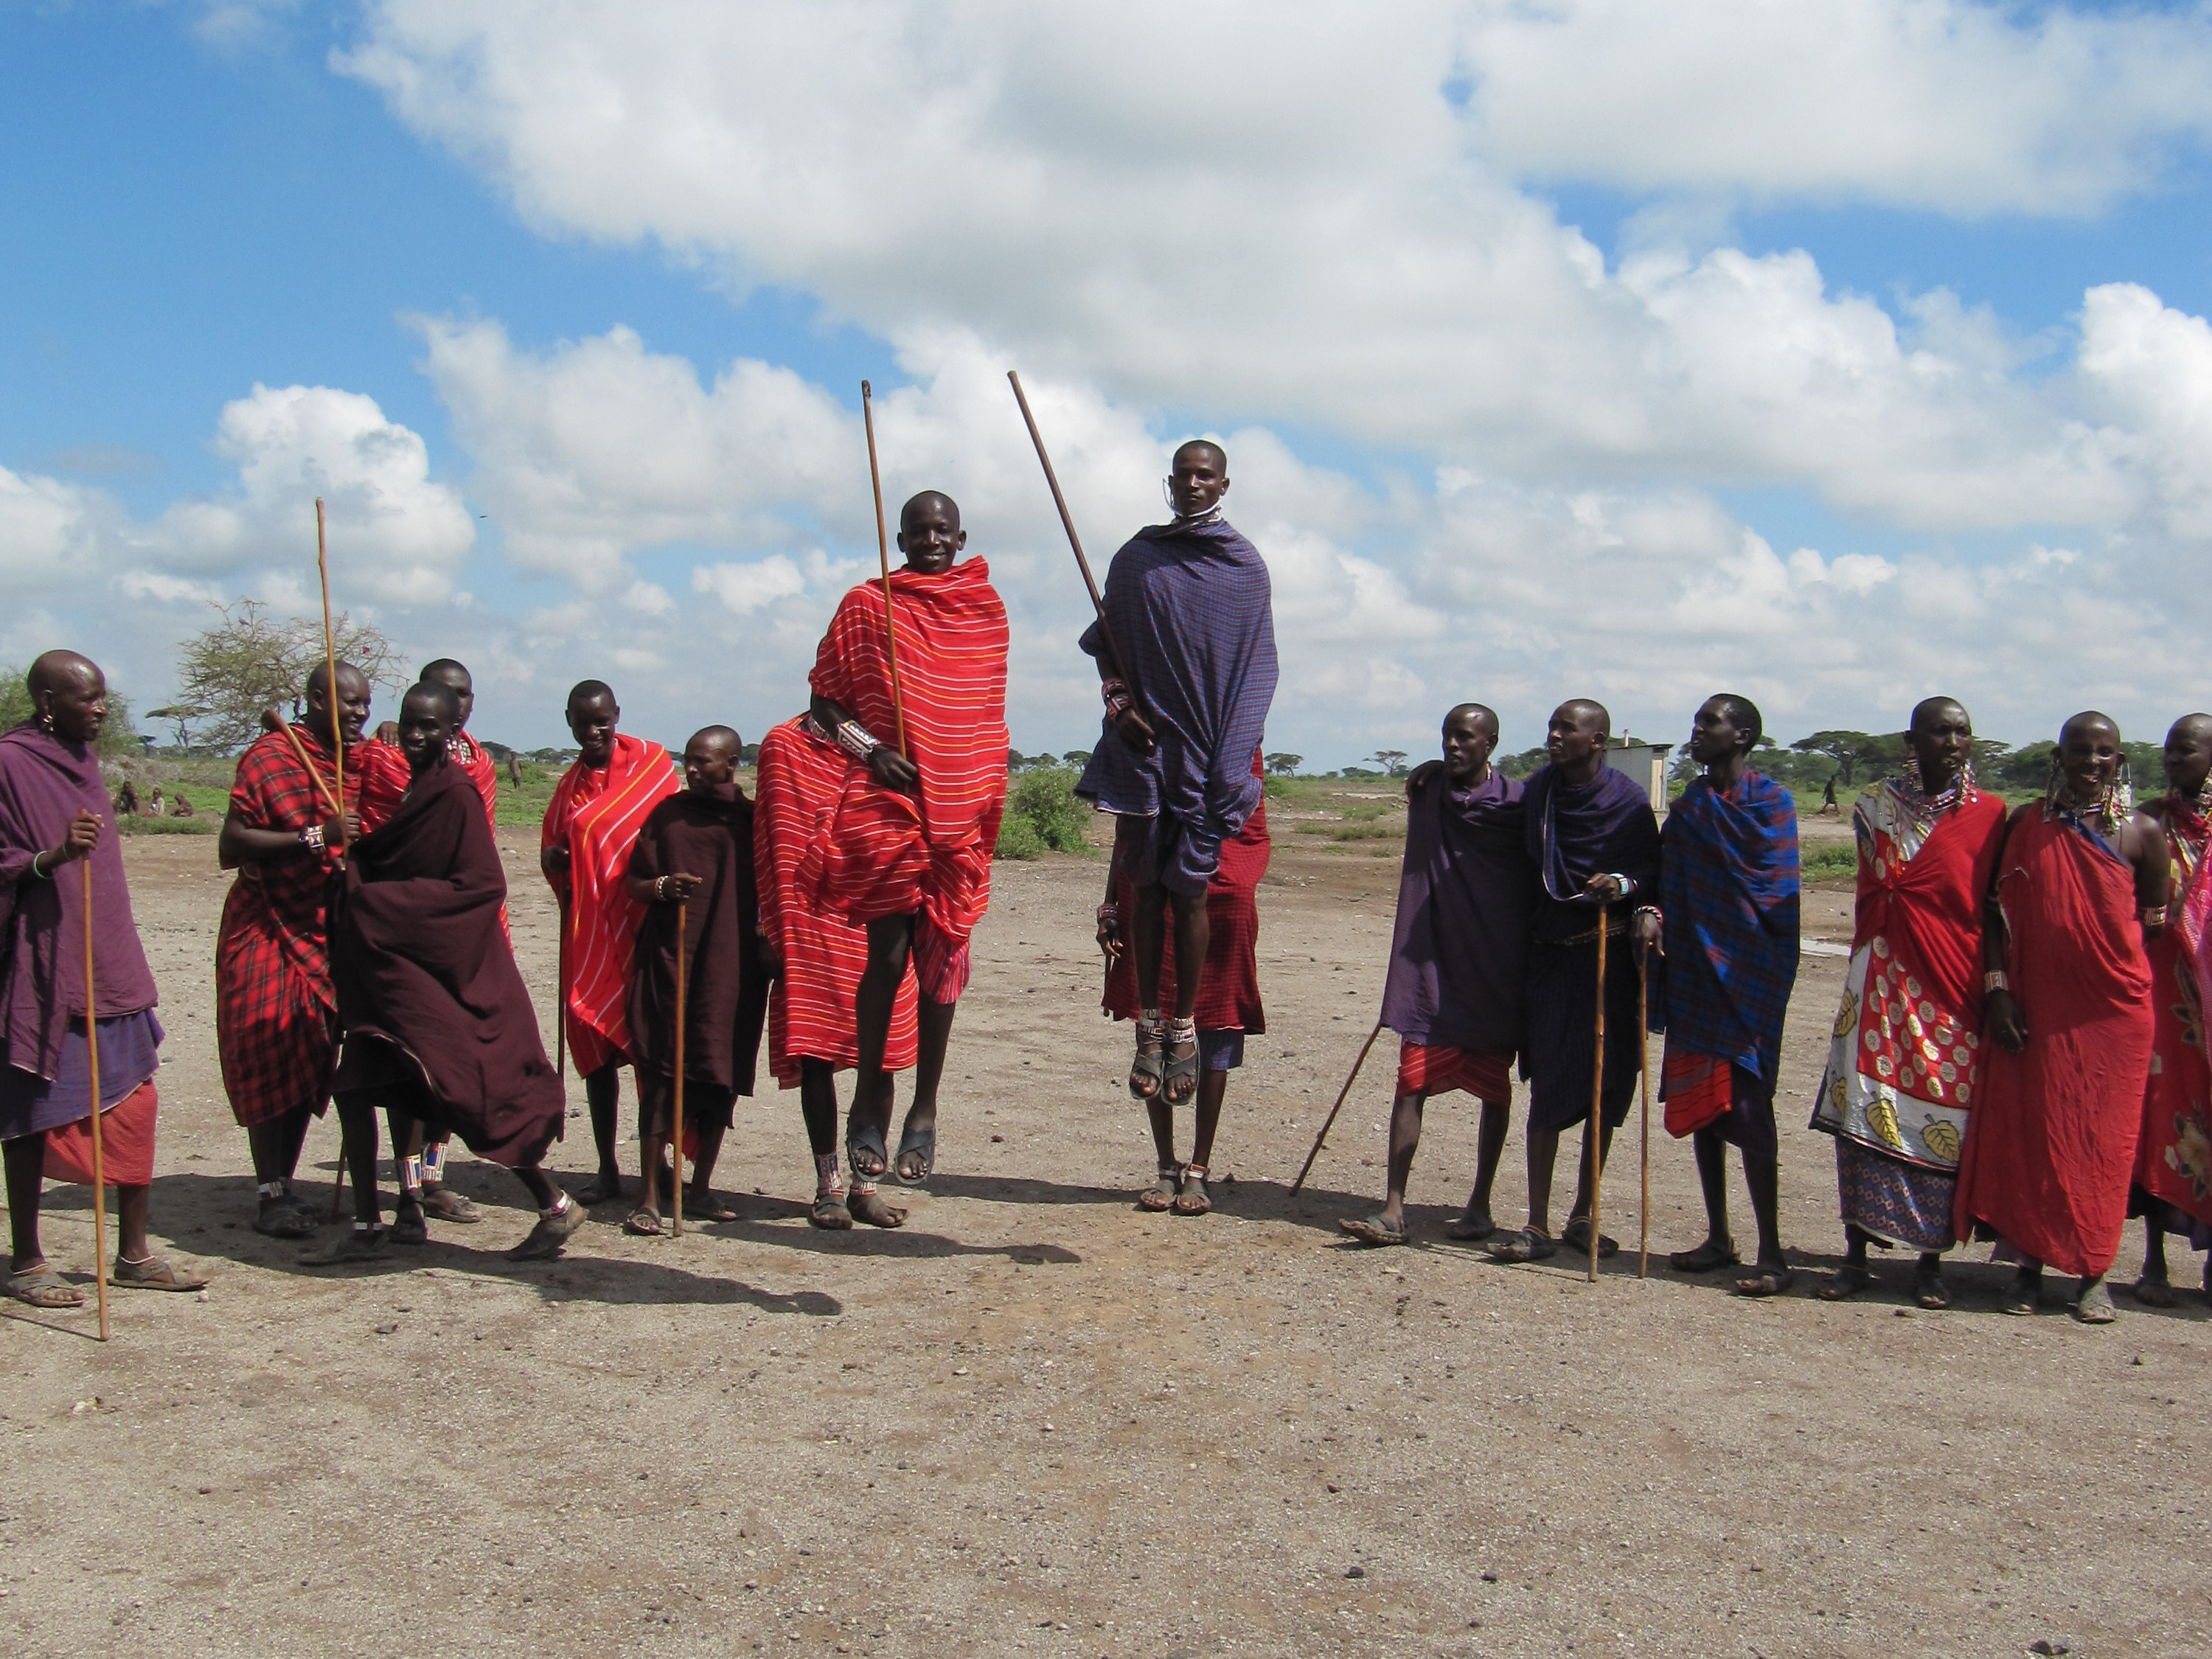 Masai_village,_Amboseli_National_Park_2010_6